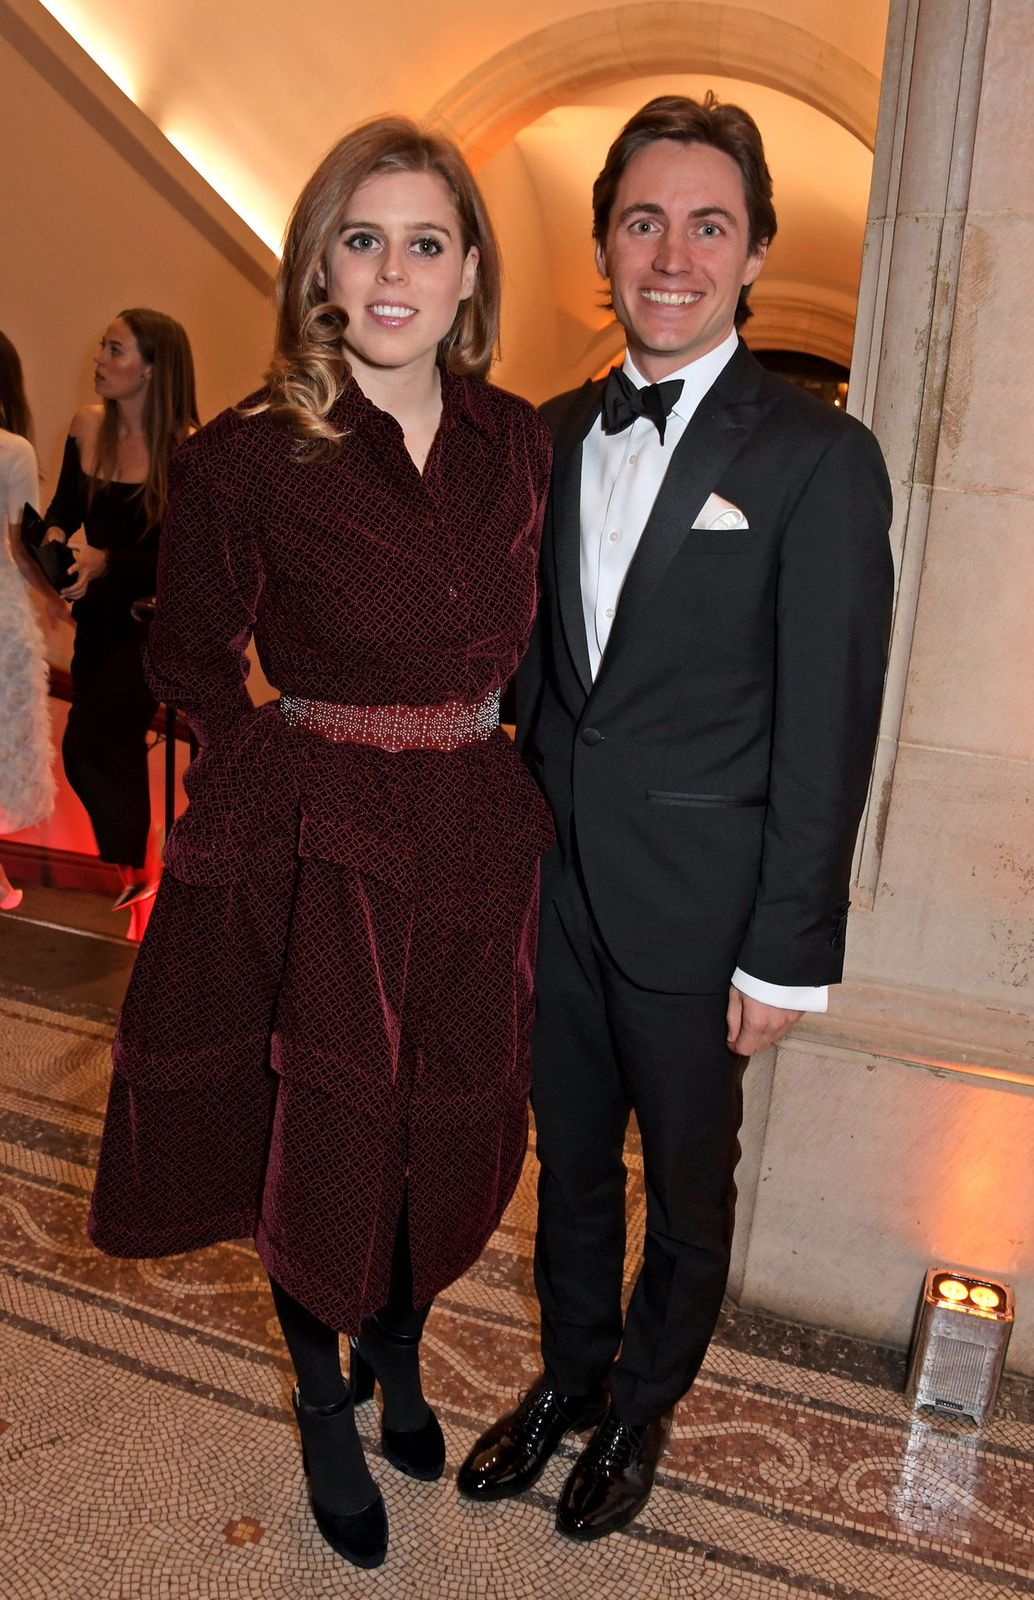 Princess Beatrice and Edoardo Mapelli Mozzi at The Portrait Gala held at the National Portrait Gallery on March 12, 2019, in London, England | Photo: David M. Benett/Dave Benett/Getty Images